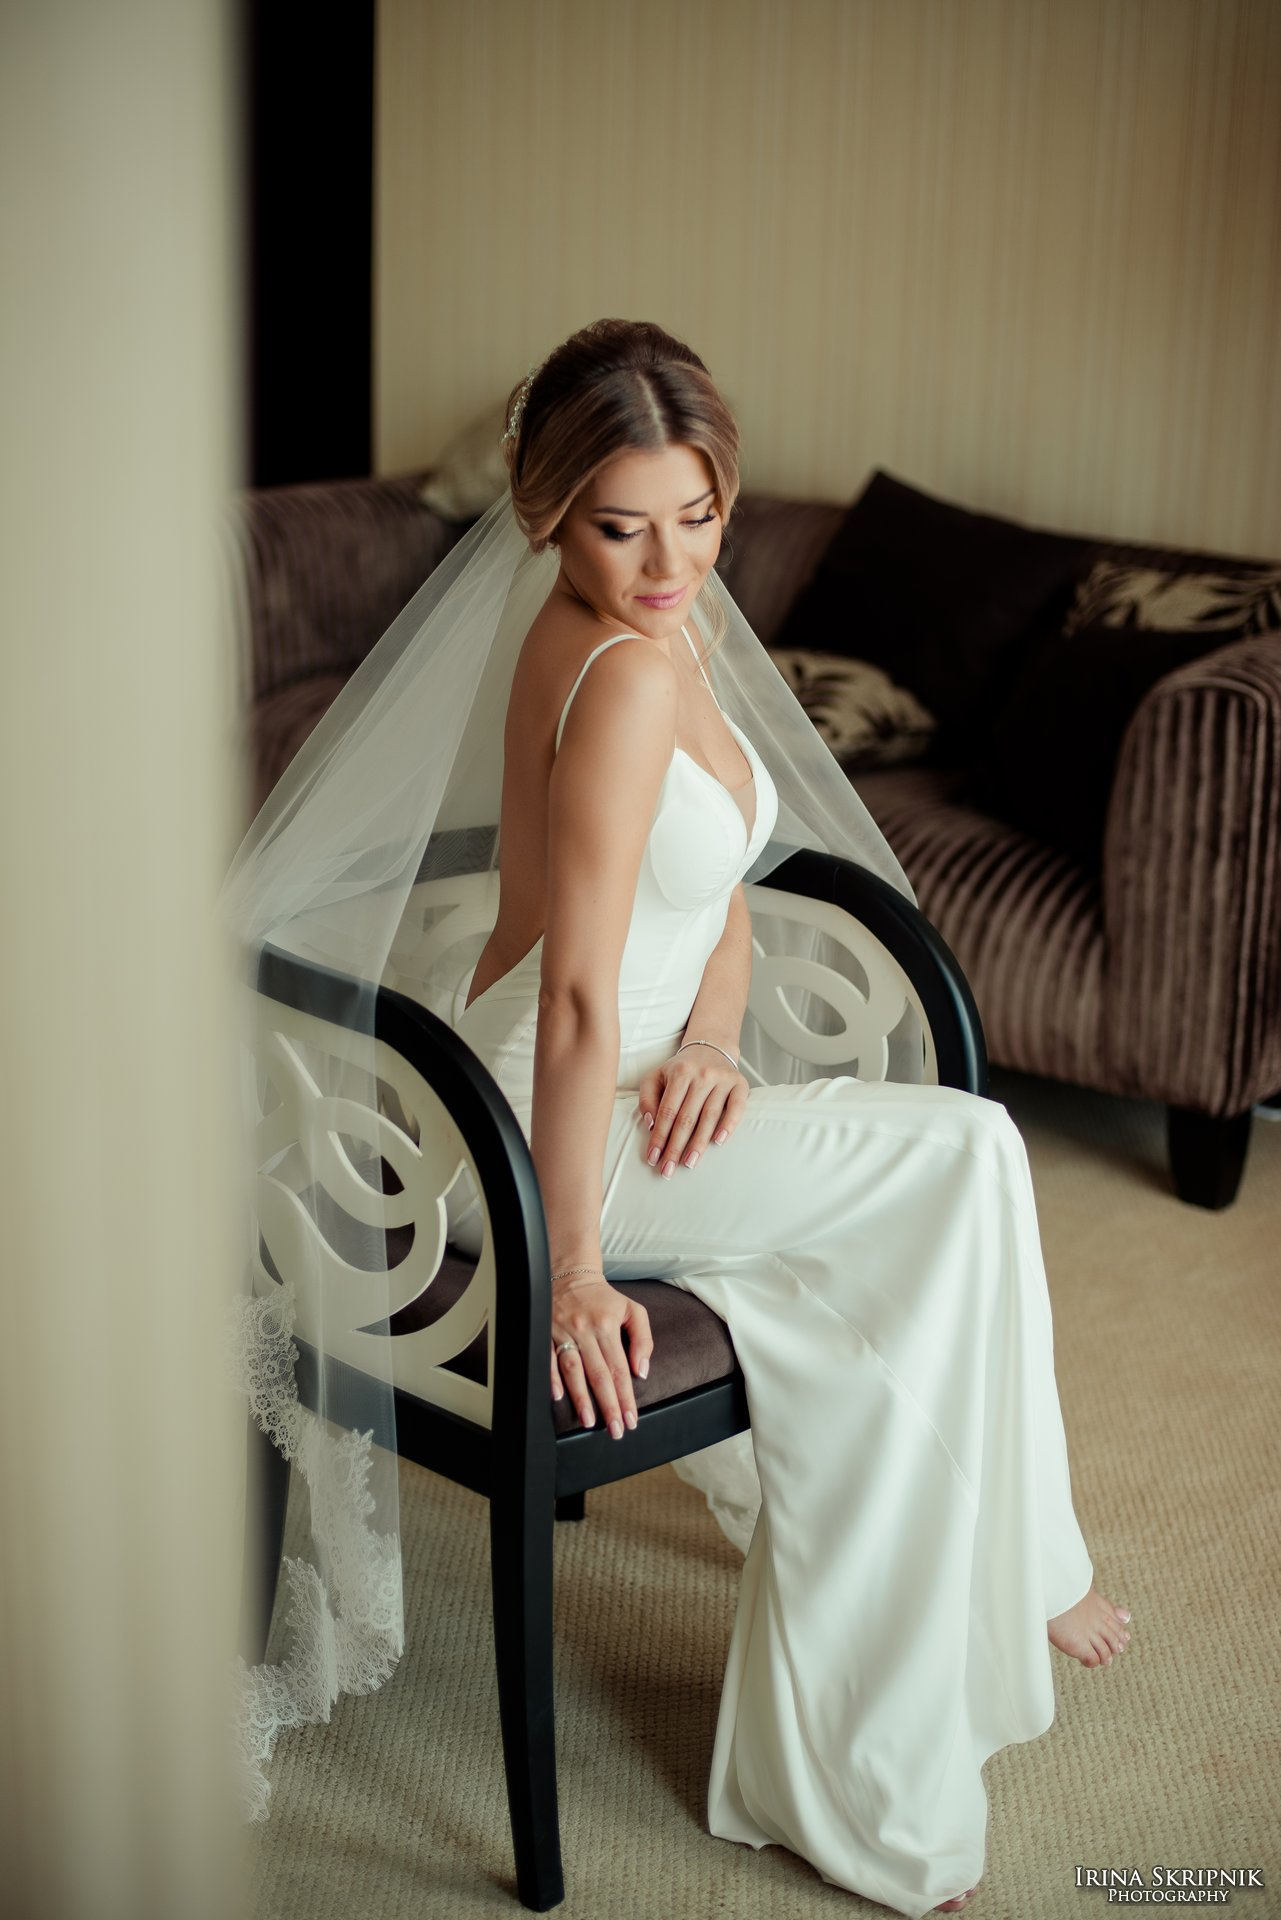 Irina Skripnik Weddings 00978